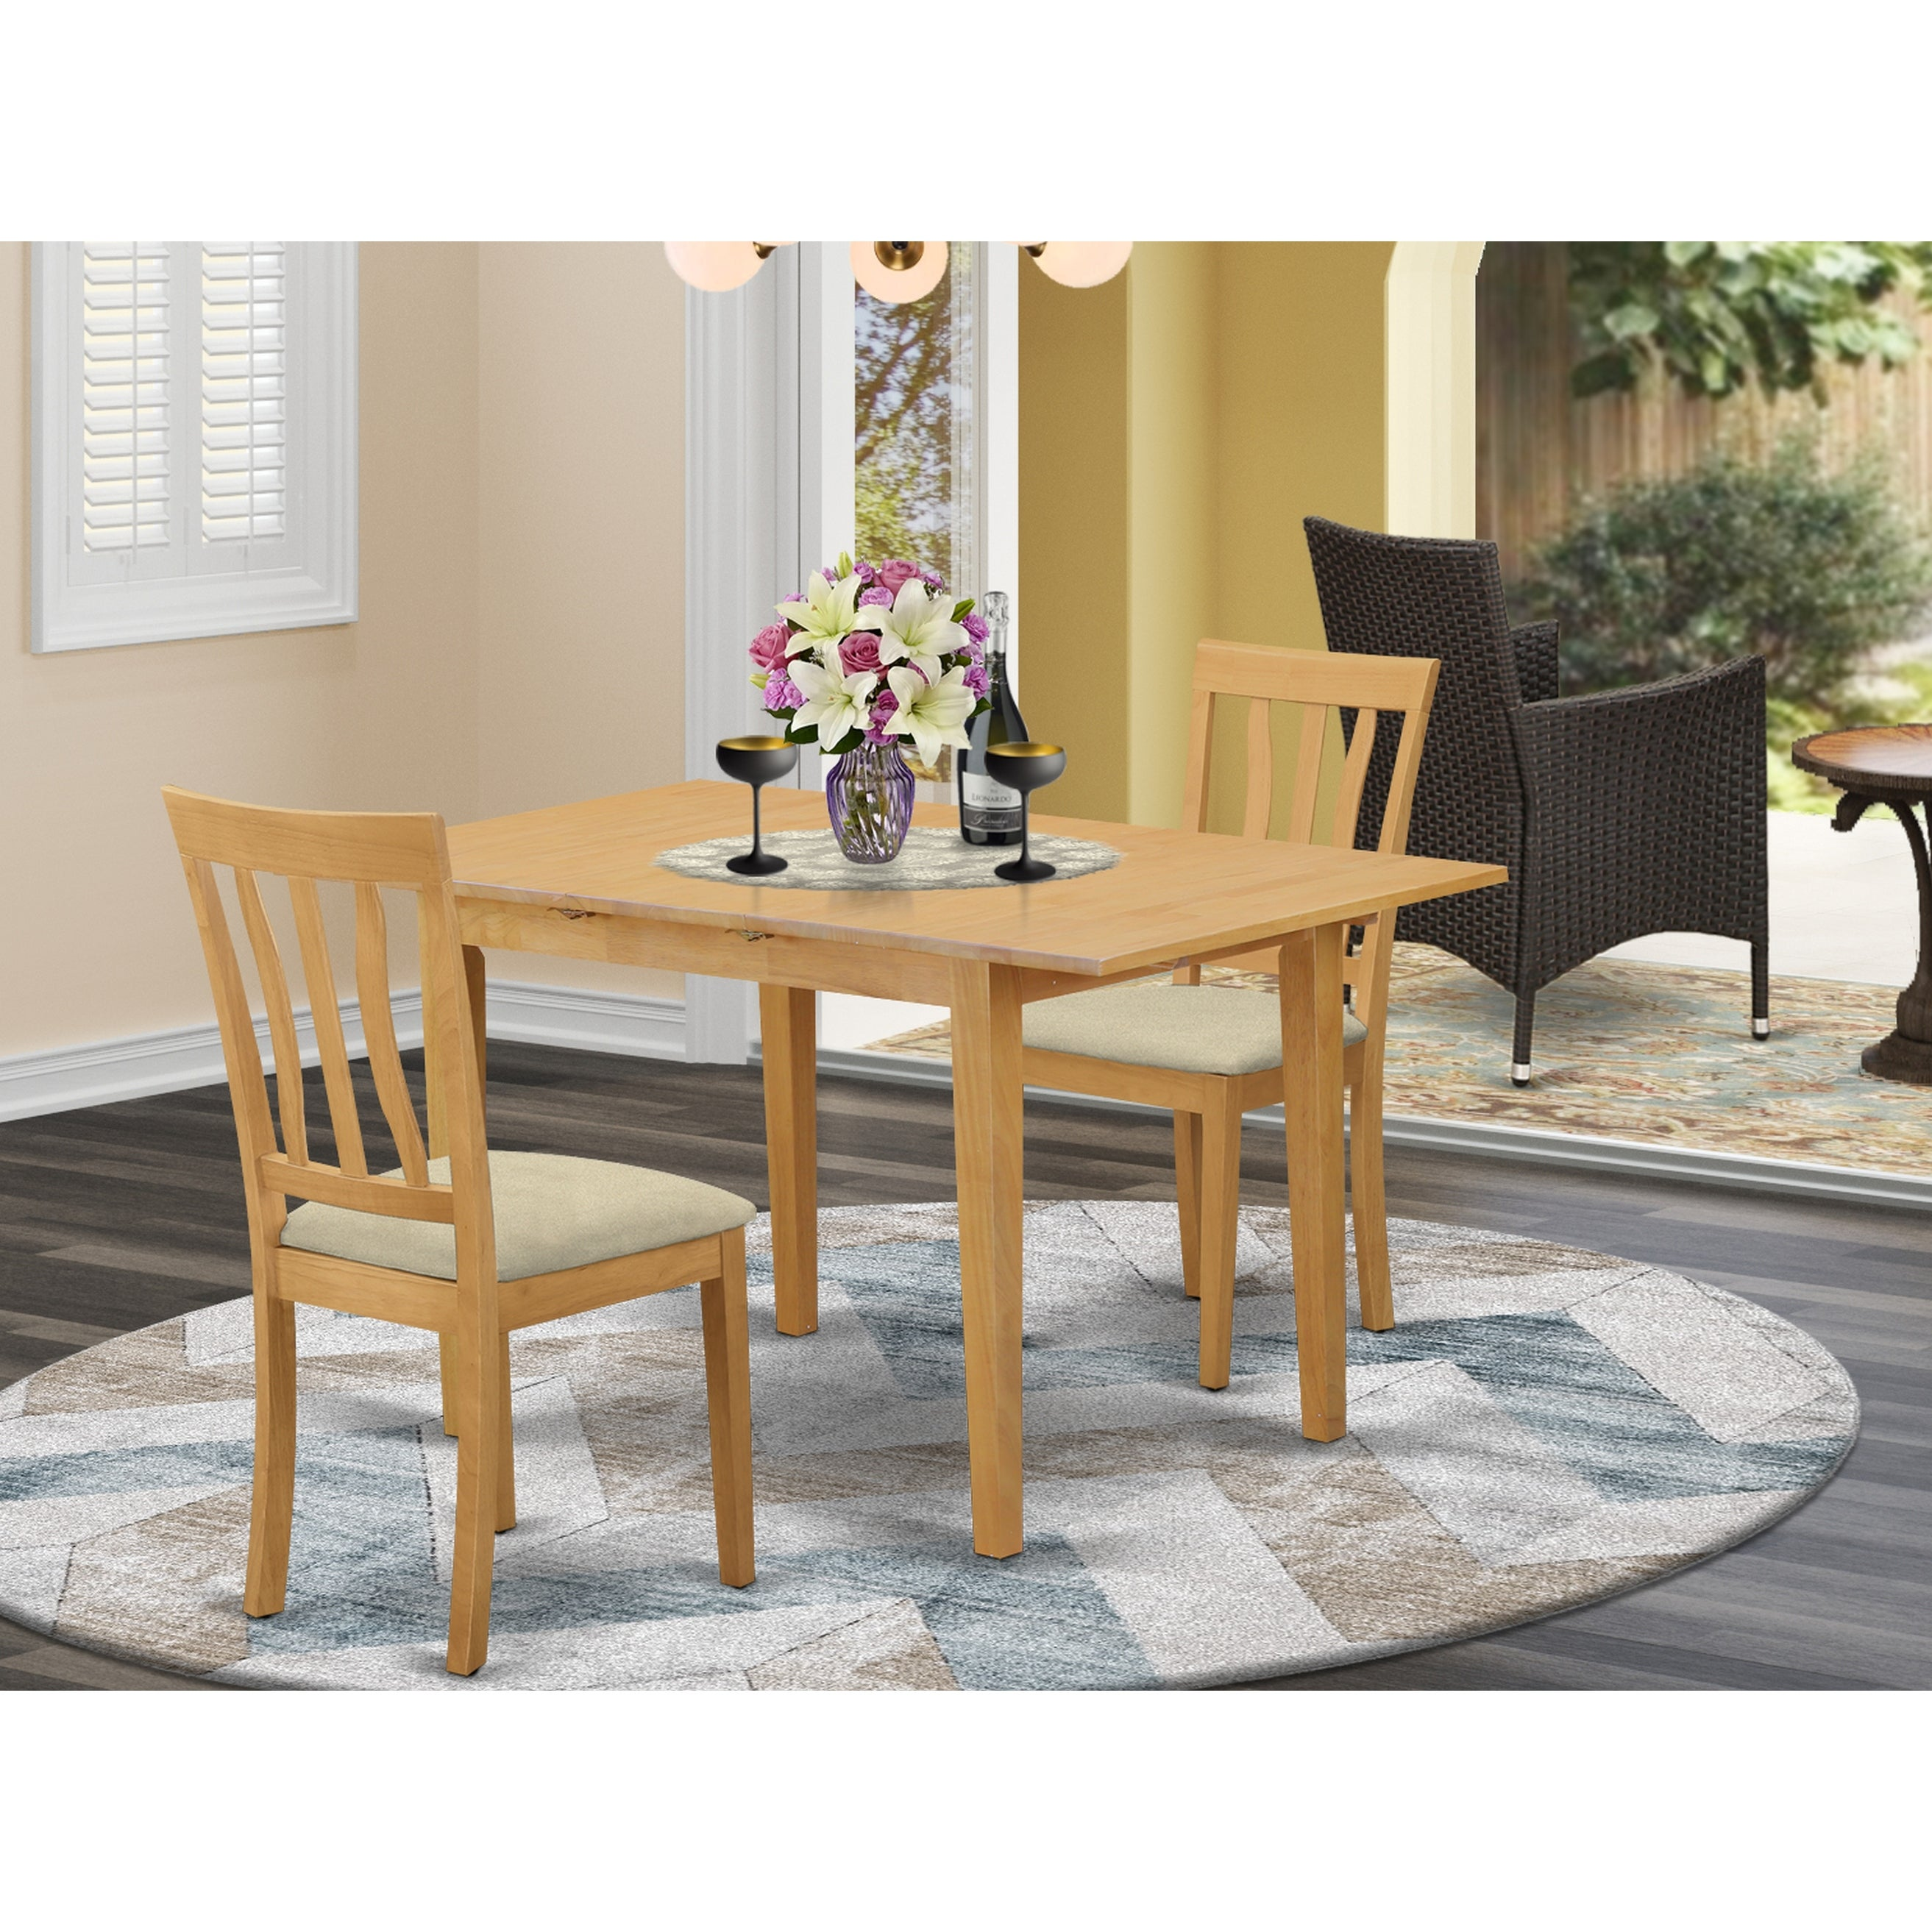 Shop Noan3 C 3 Piece Dining Table Set Small Dining Table And 2 Kitchen Chair Oak Overstock 14366576 Wood Seat